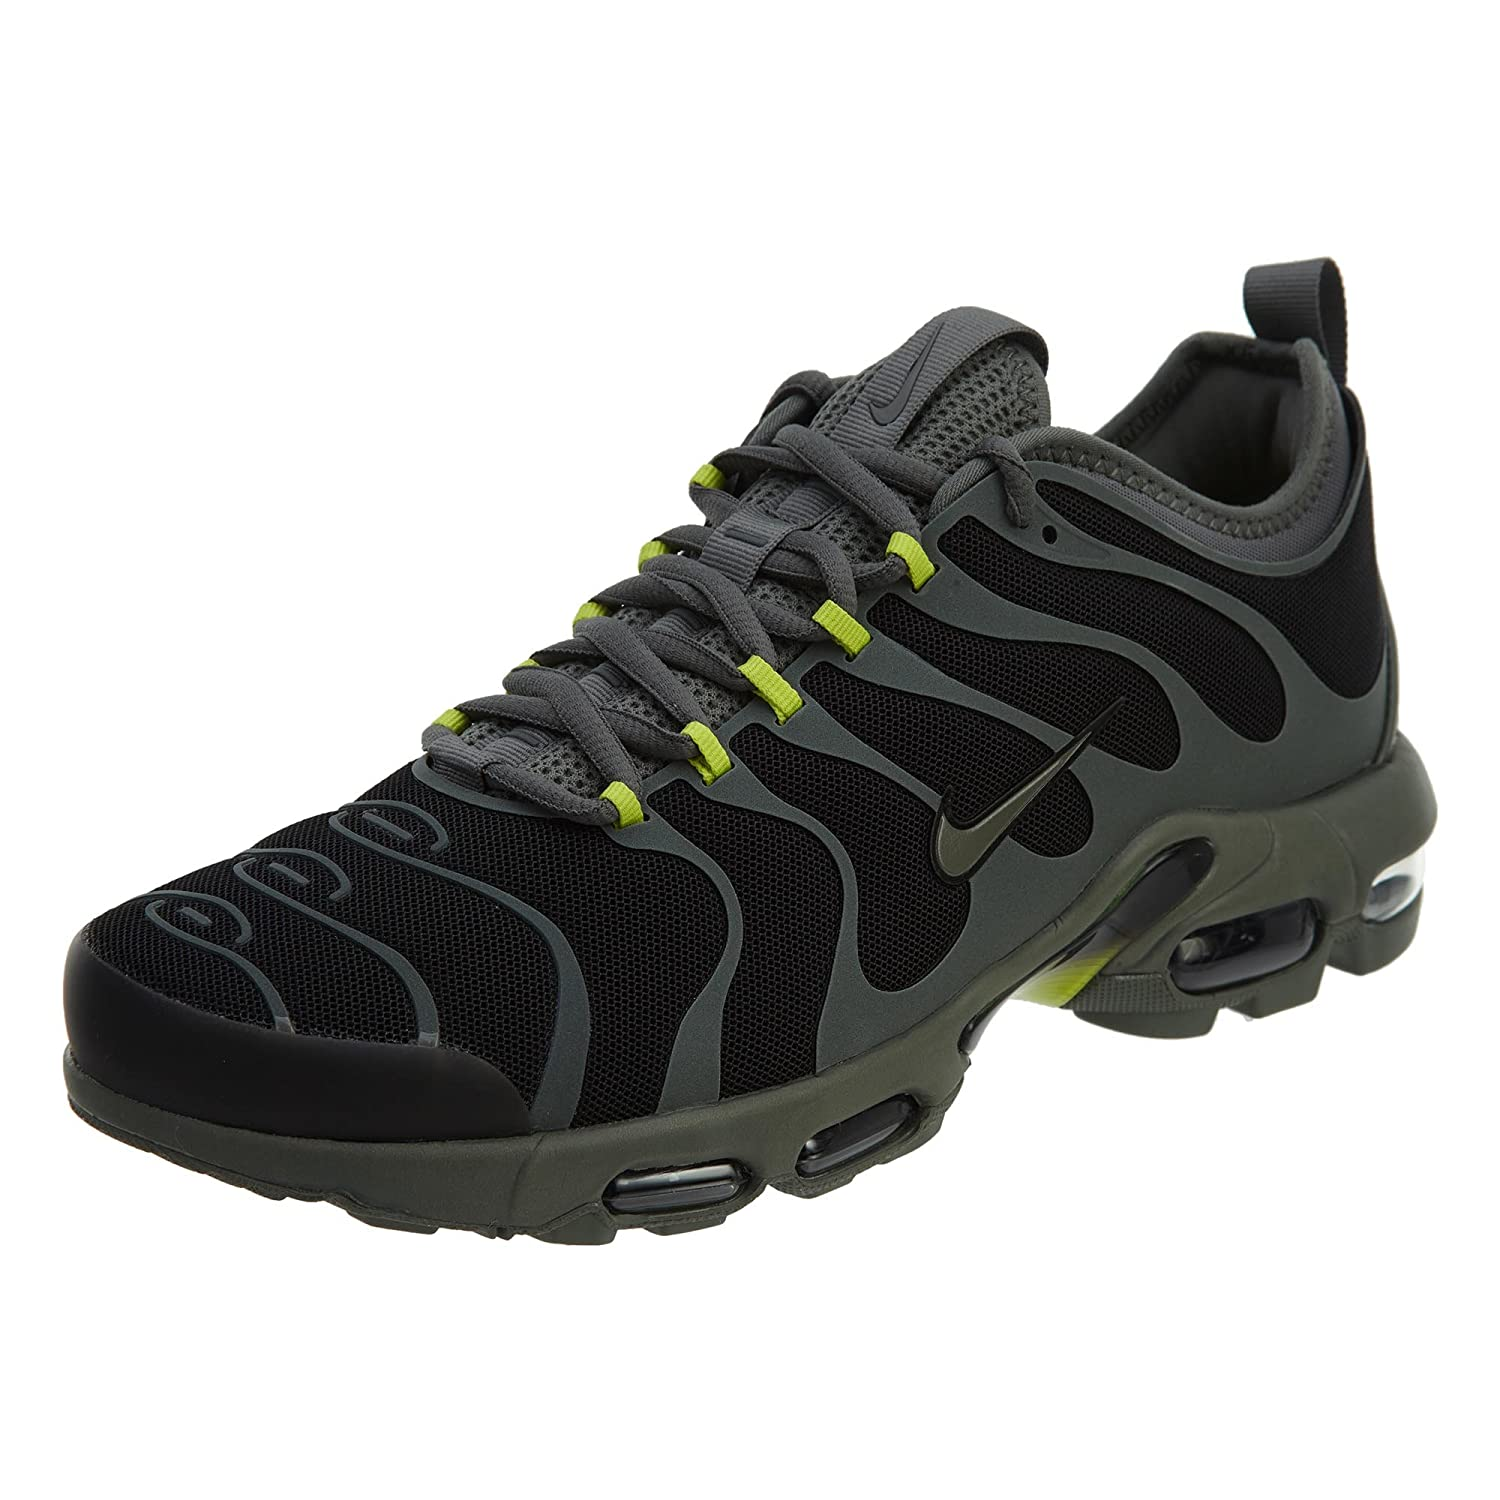 best service 56ace 0daf5 Amazon.com   Nike Air Max Plus Tn Ultra Mens Style  898015-006 Size  7    Running